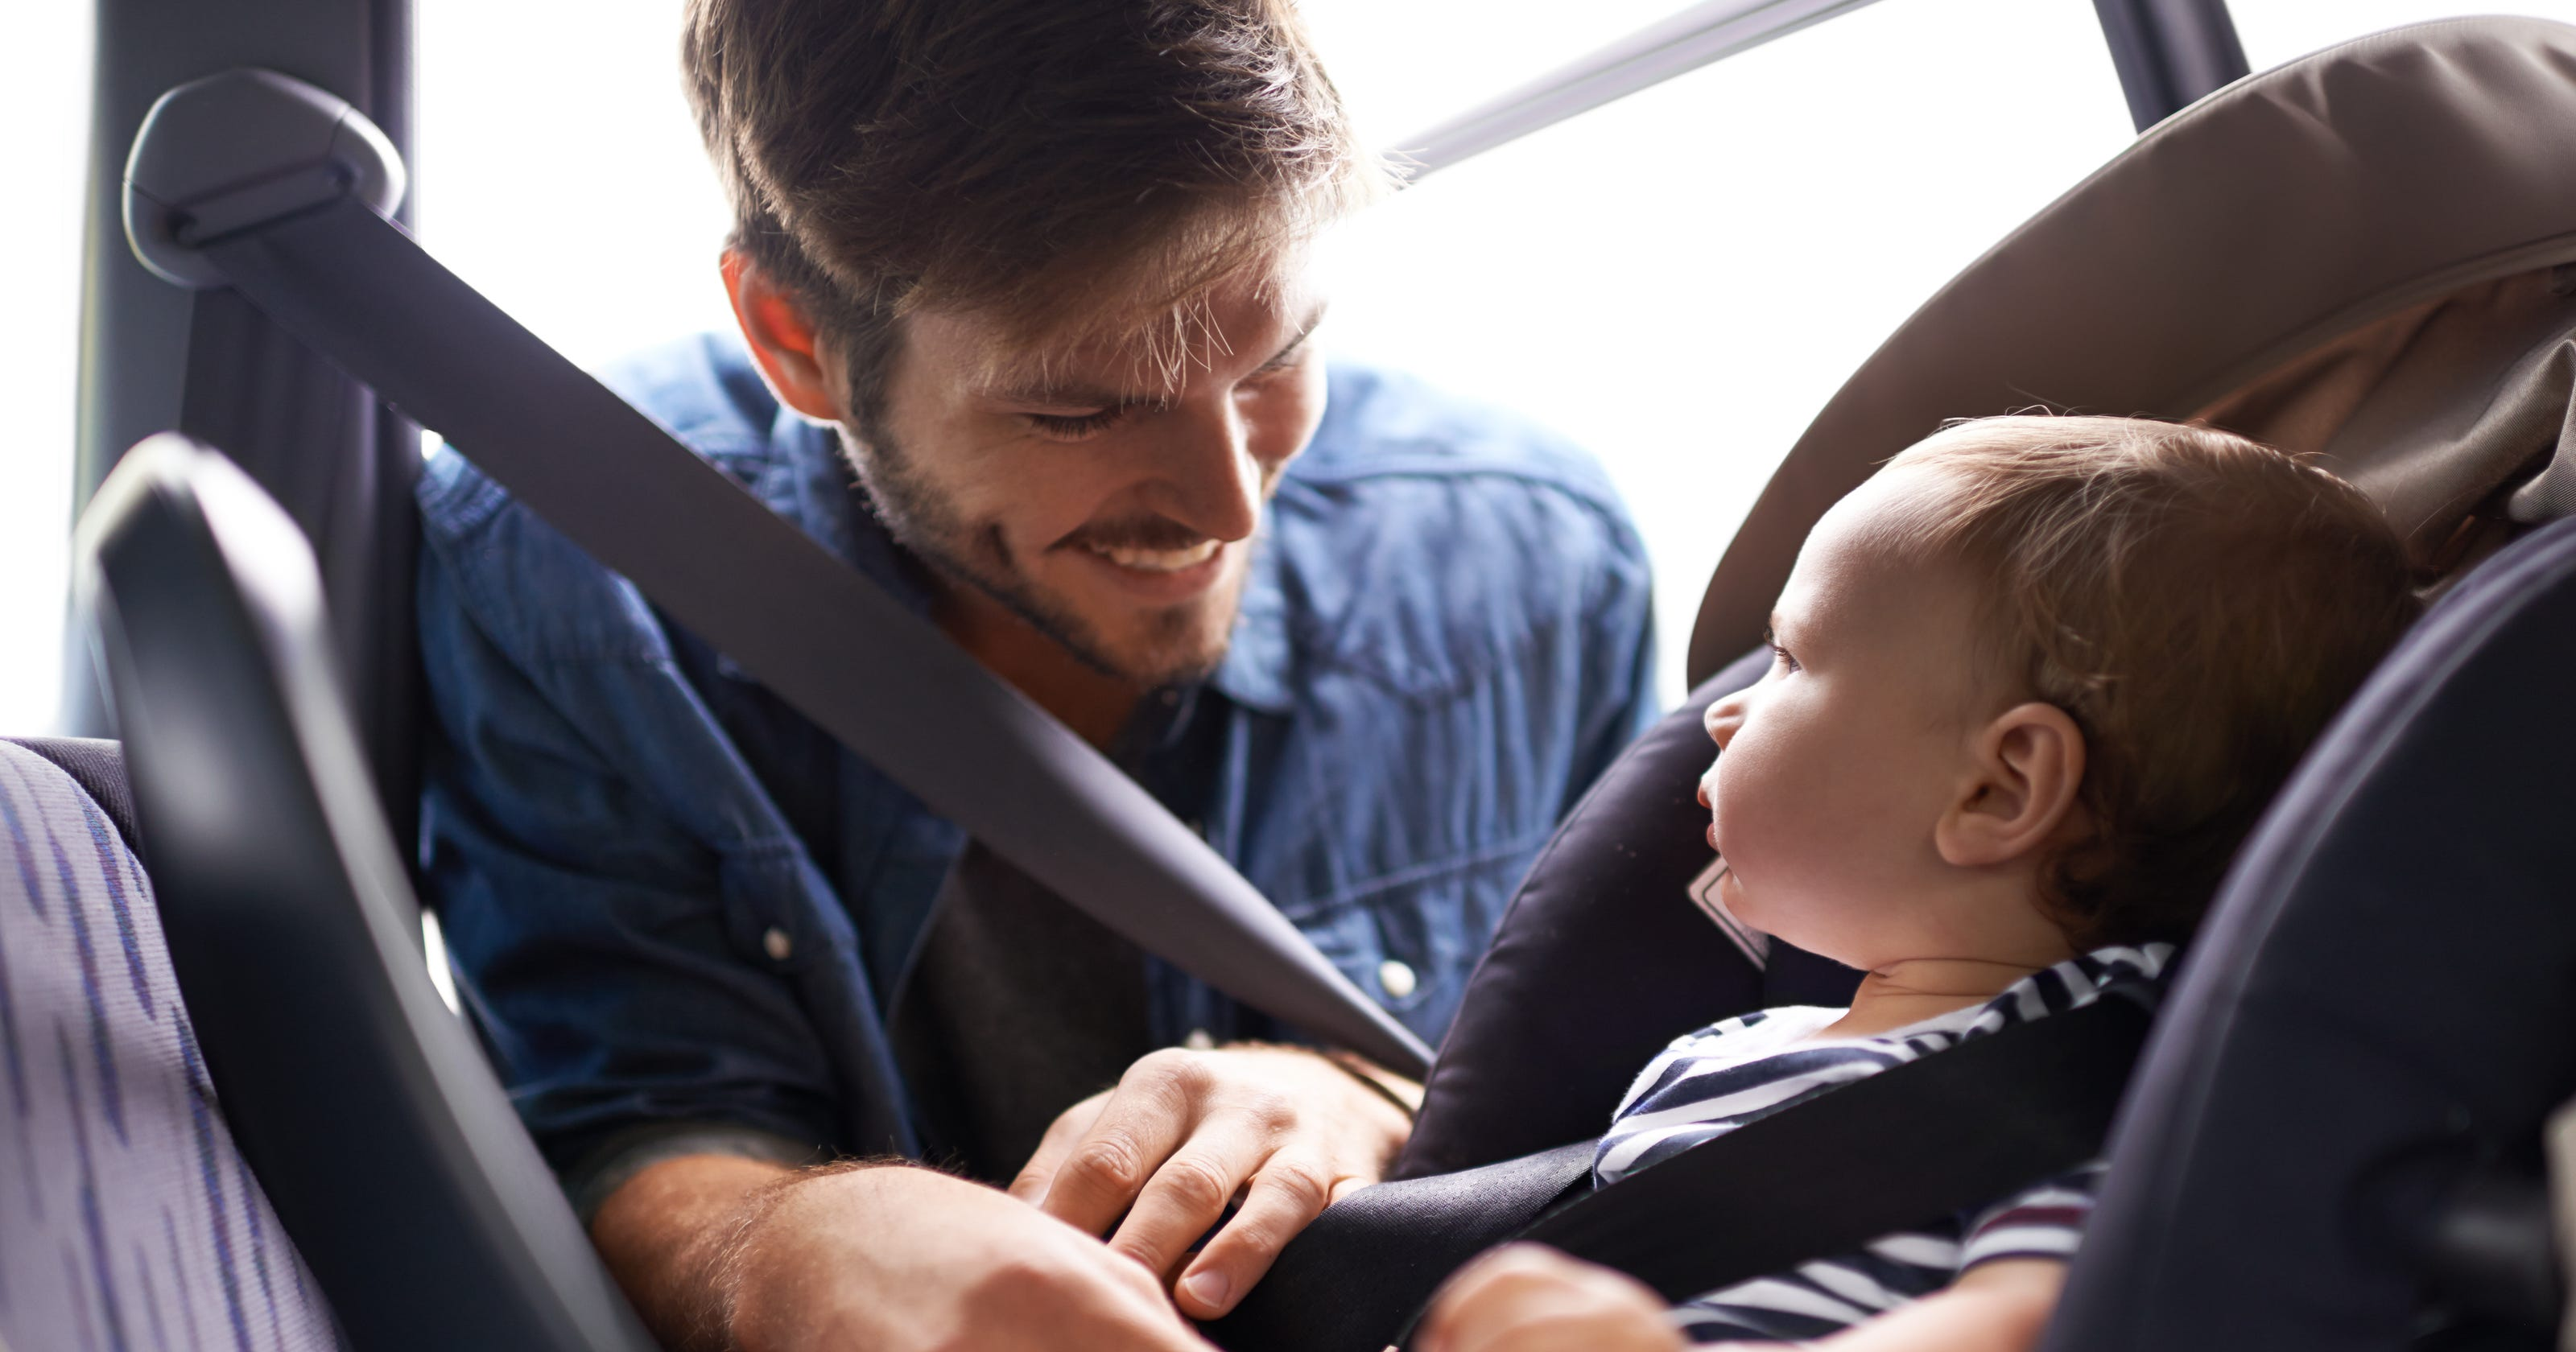 CAR SEAT SAFETY What Are The Rules For Keeping Your Children Safe